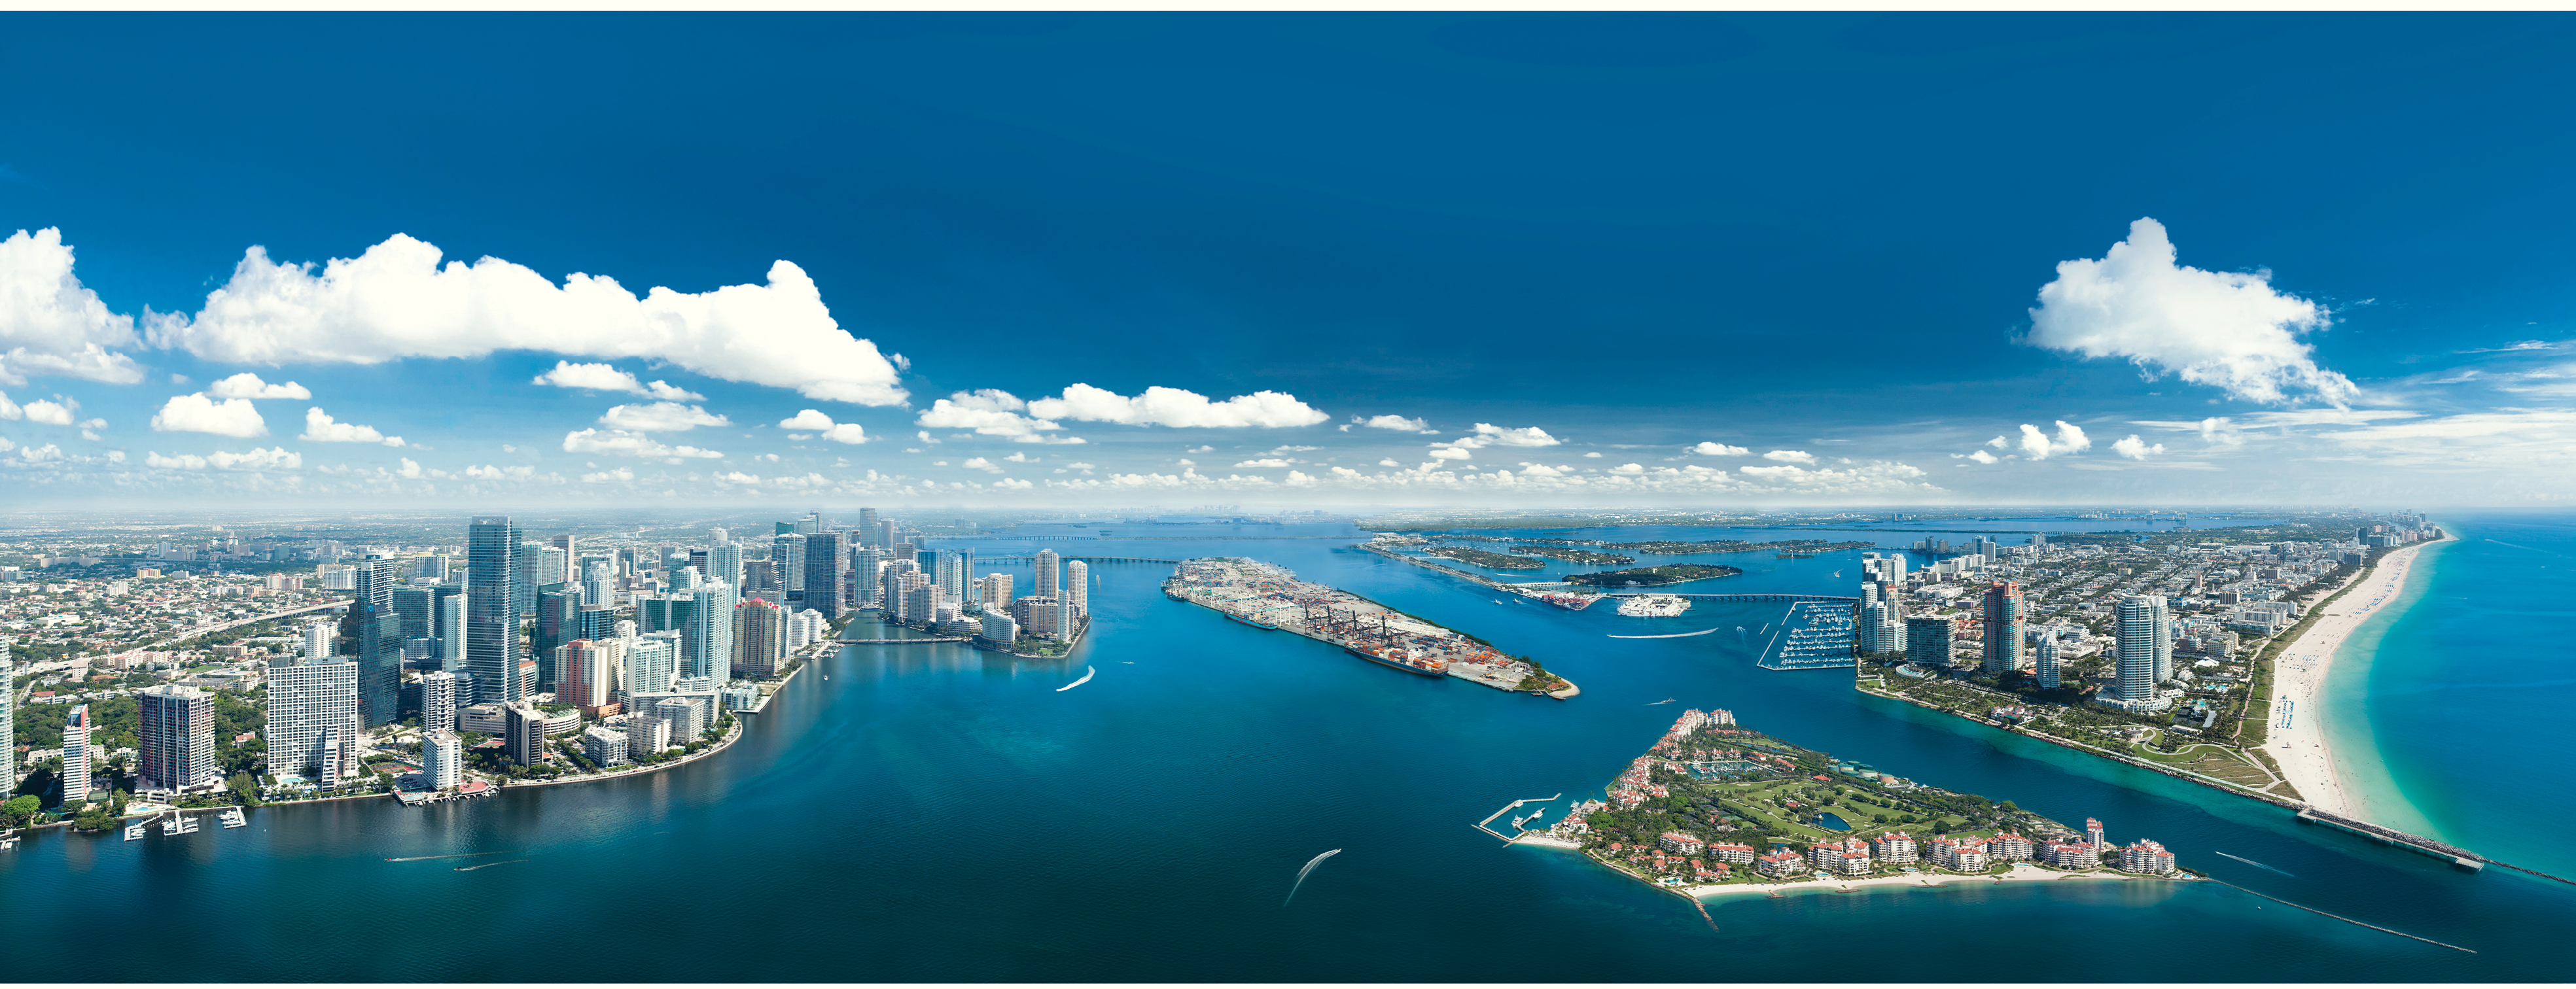 Winter sun holidays to Miami with Kenwood Travel